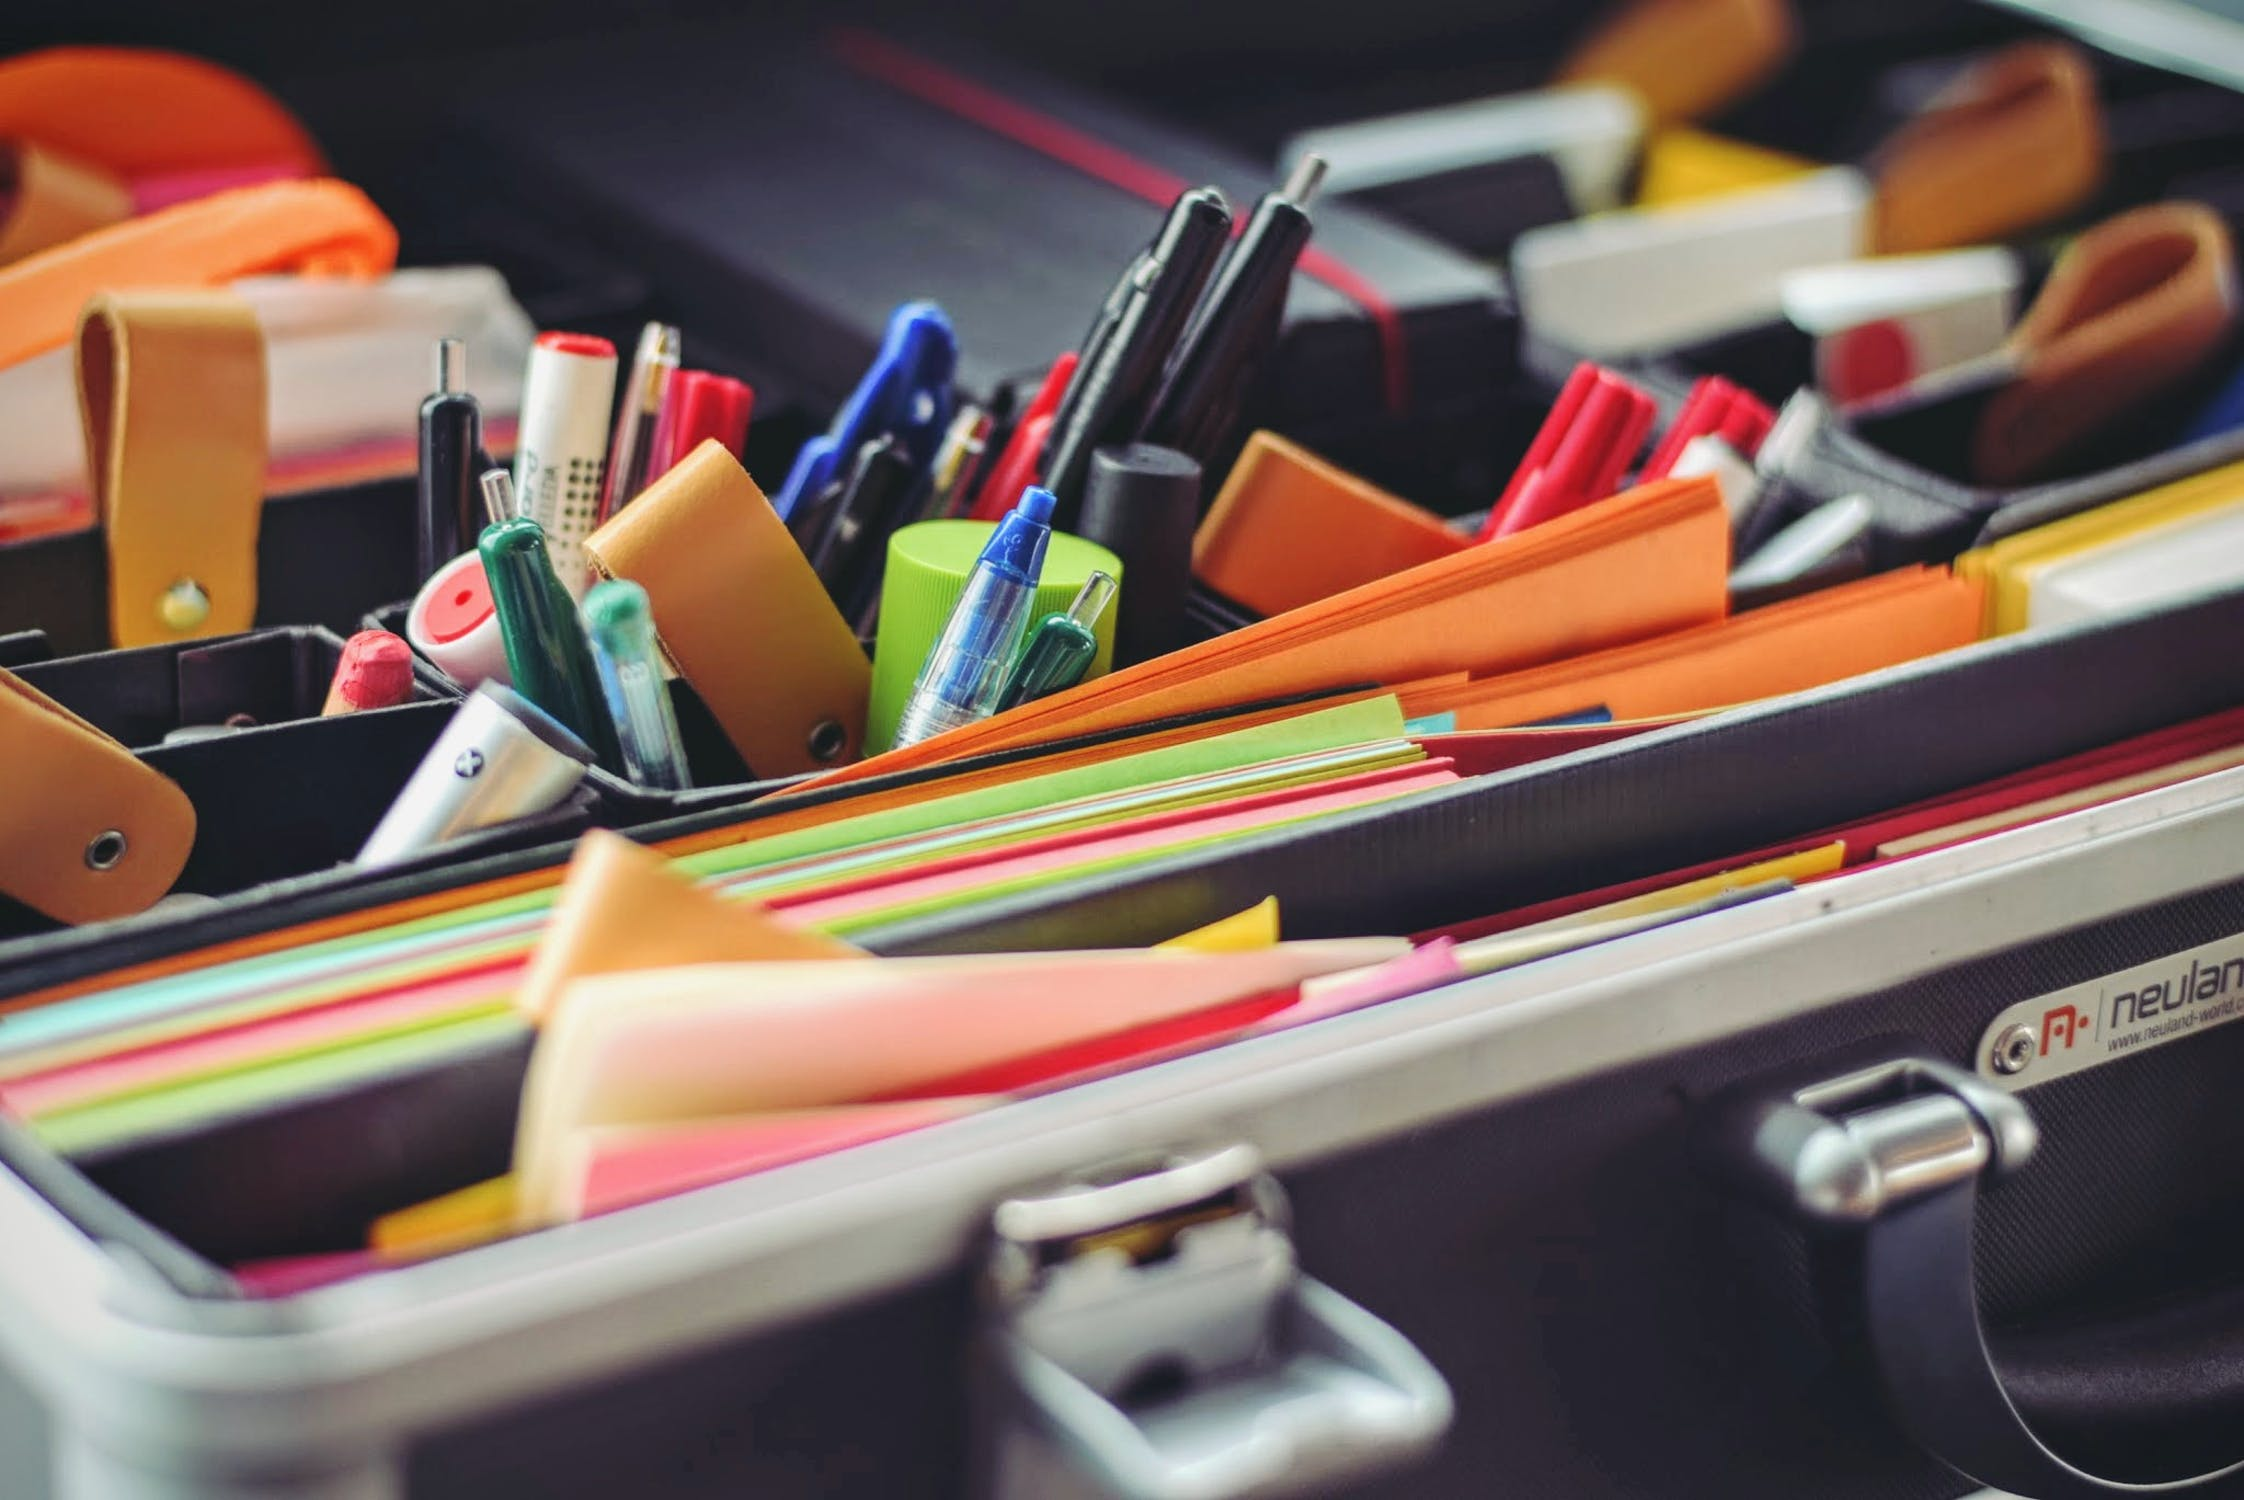 Various pens and paper - some of the supplies you will need when packing your home.